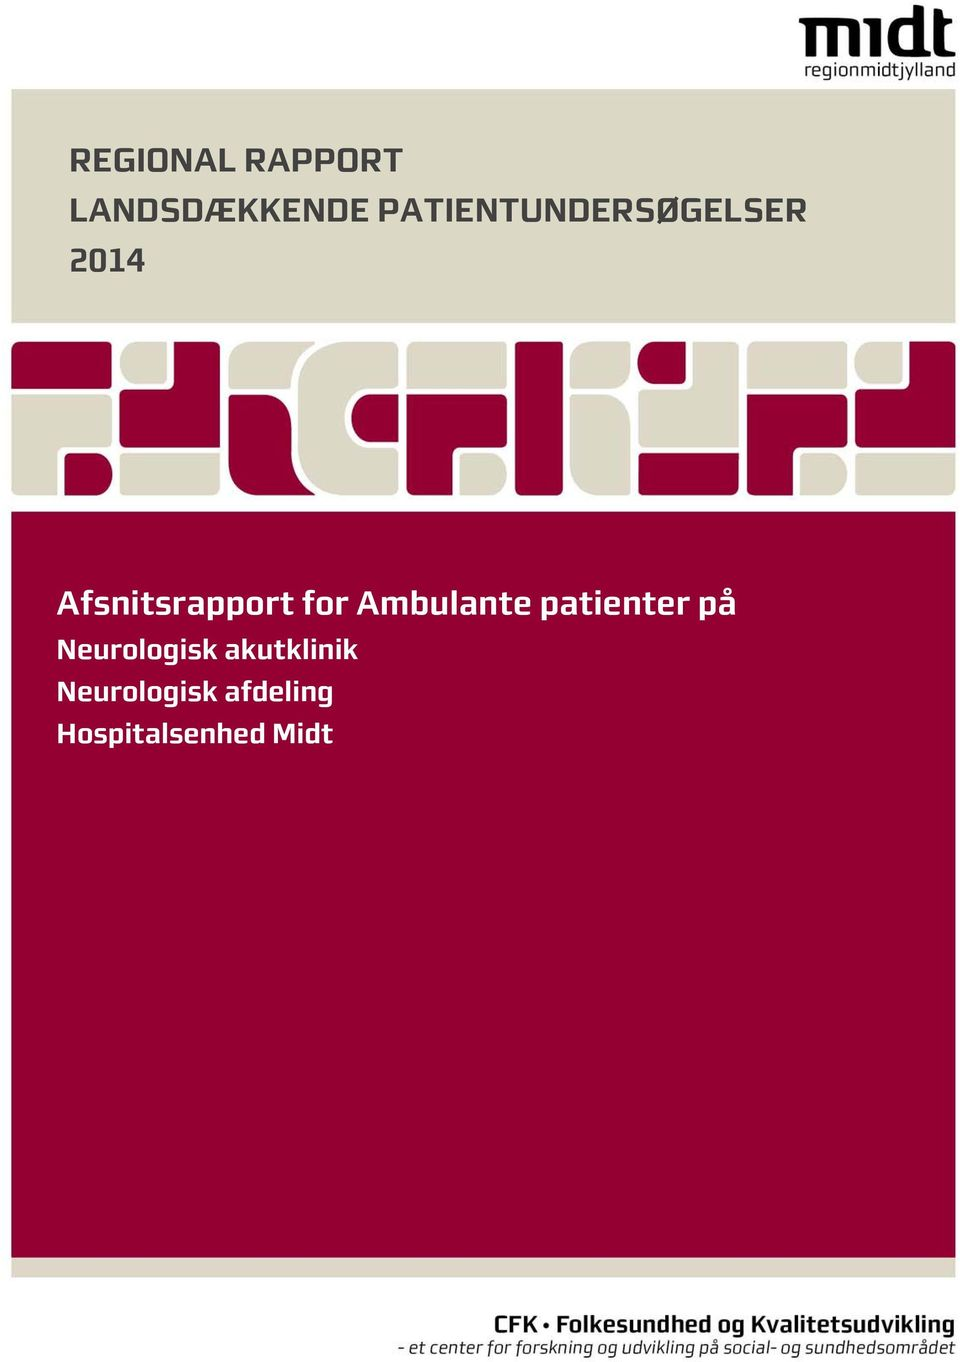 for Ambulante patienter på Neurologisk